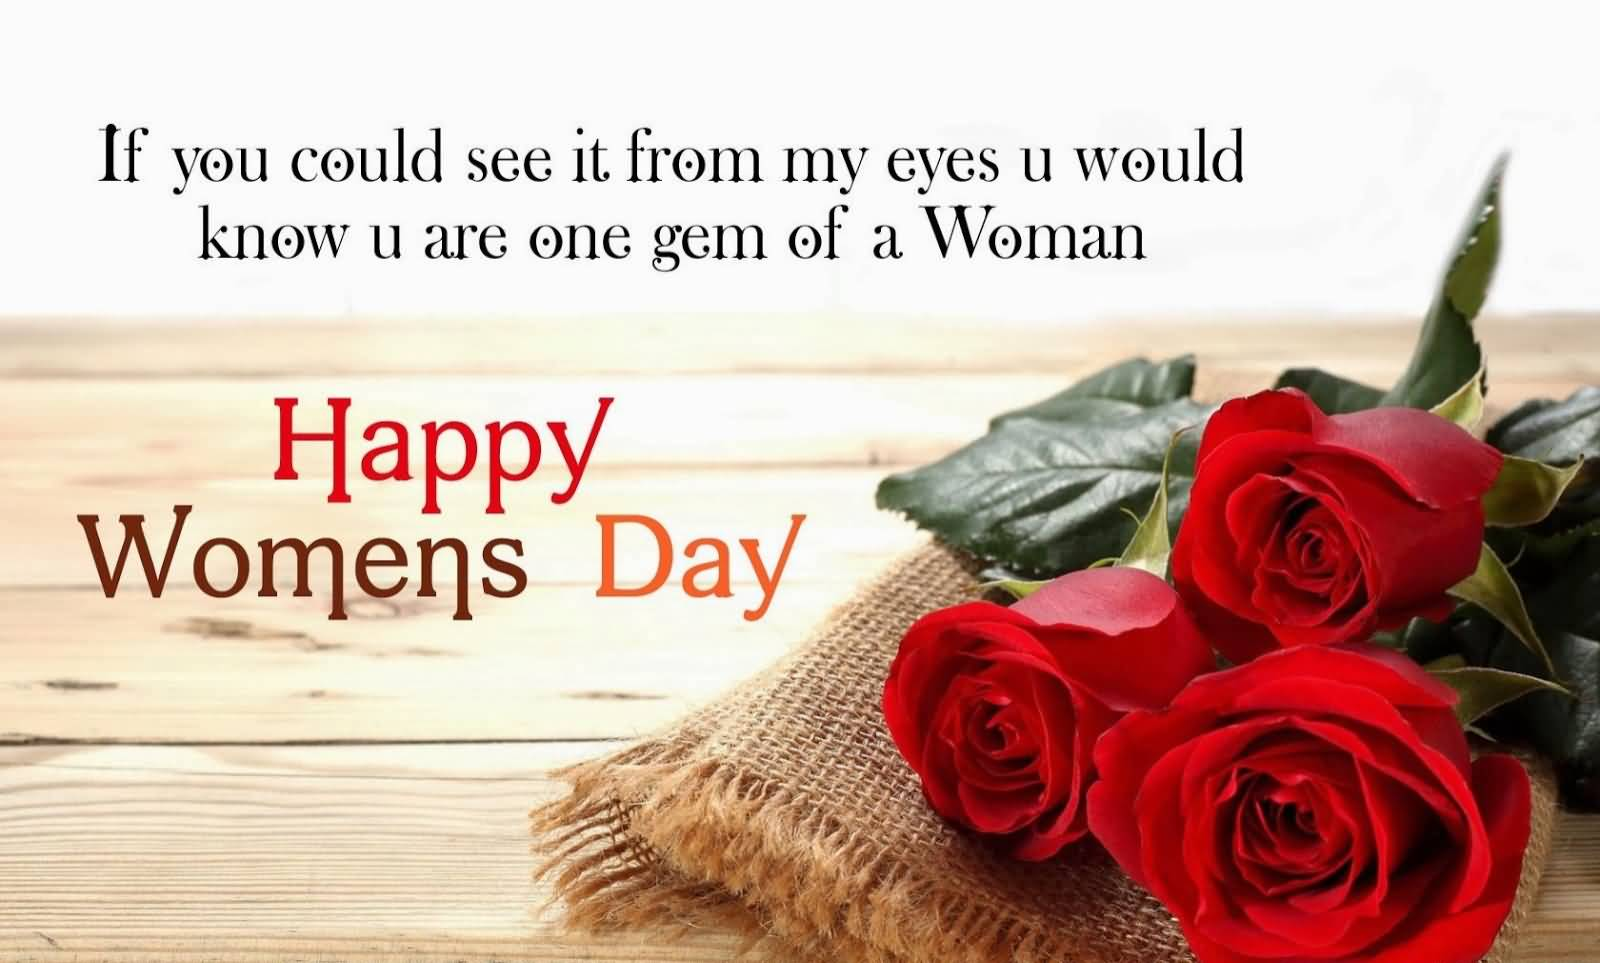 If You Could See You Through My Eyes Quotes: 50 Women's Day 2017 Pictures And Photos